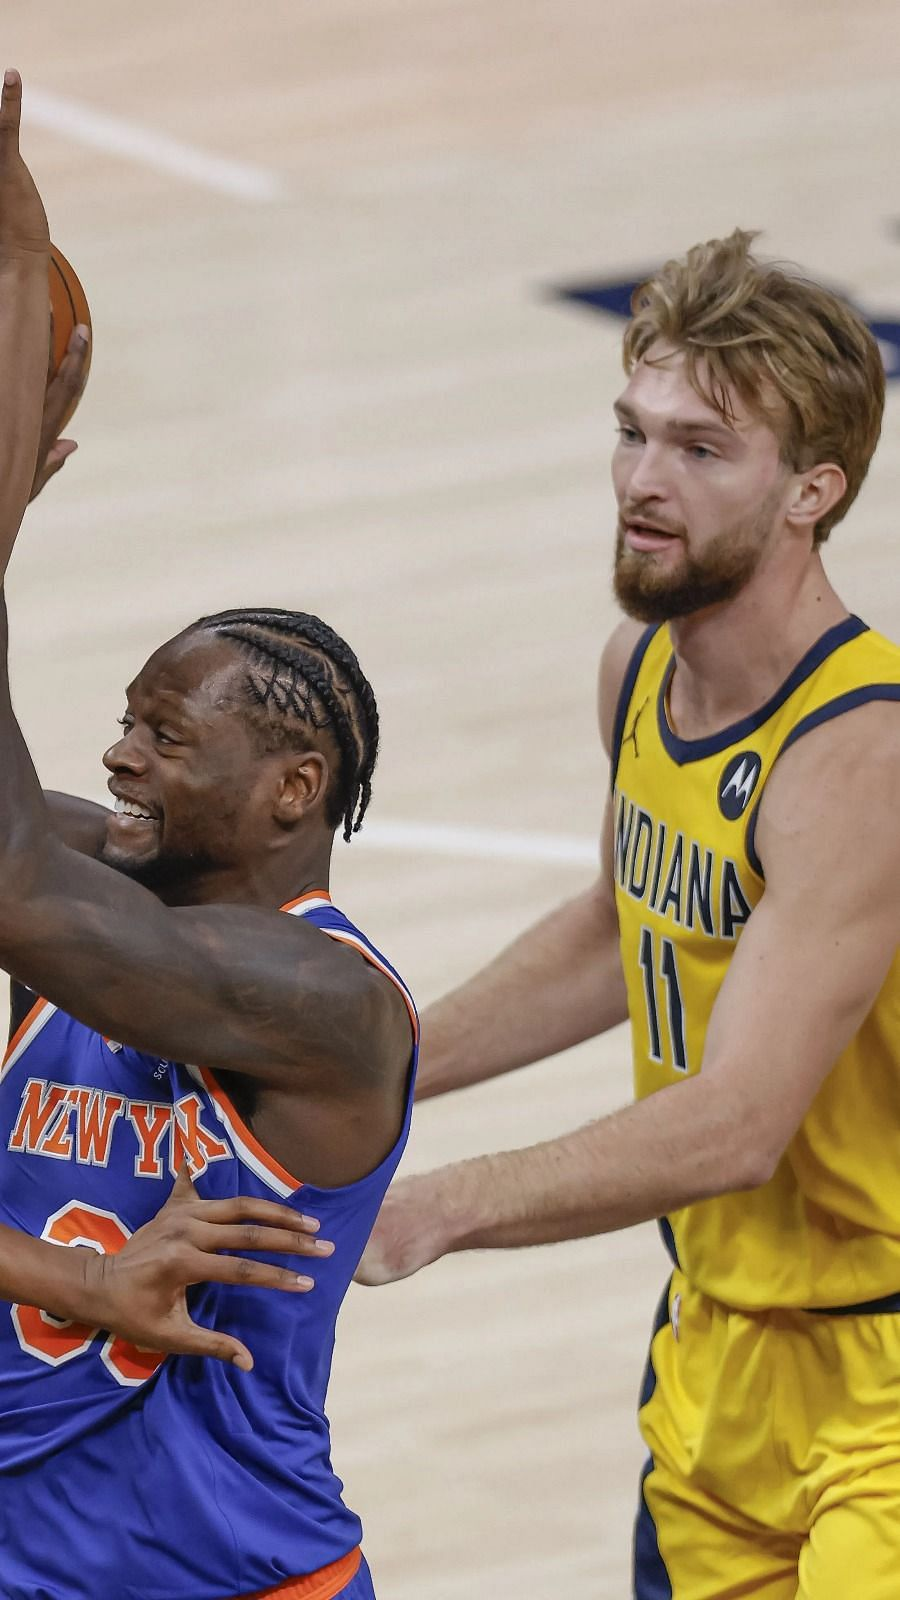 Pacers knicks betting preview goal crypto currency arbitrage bot fly